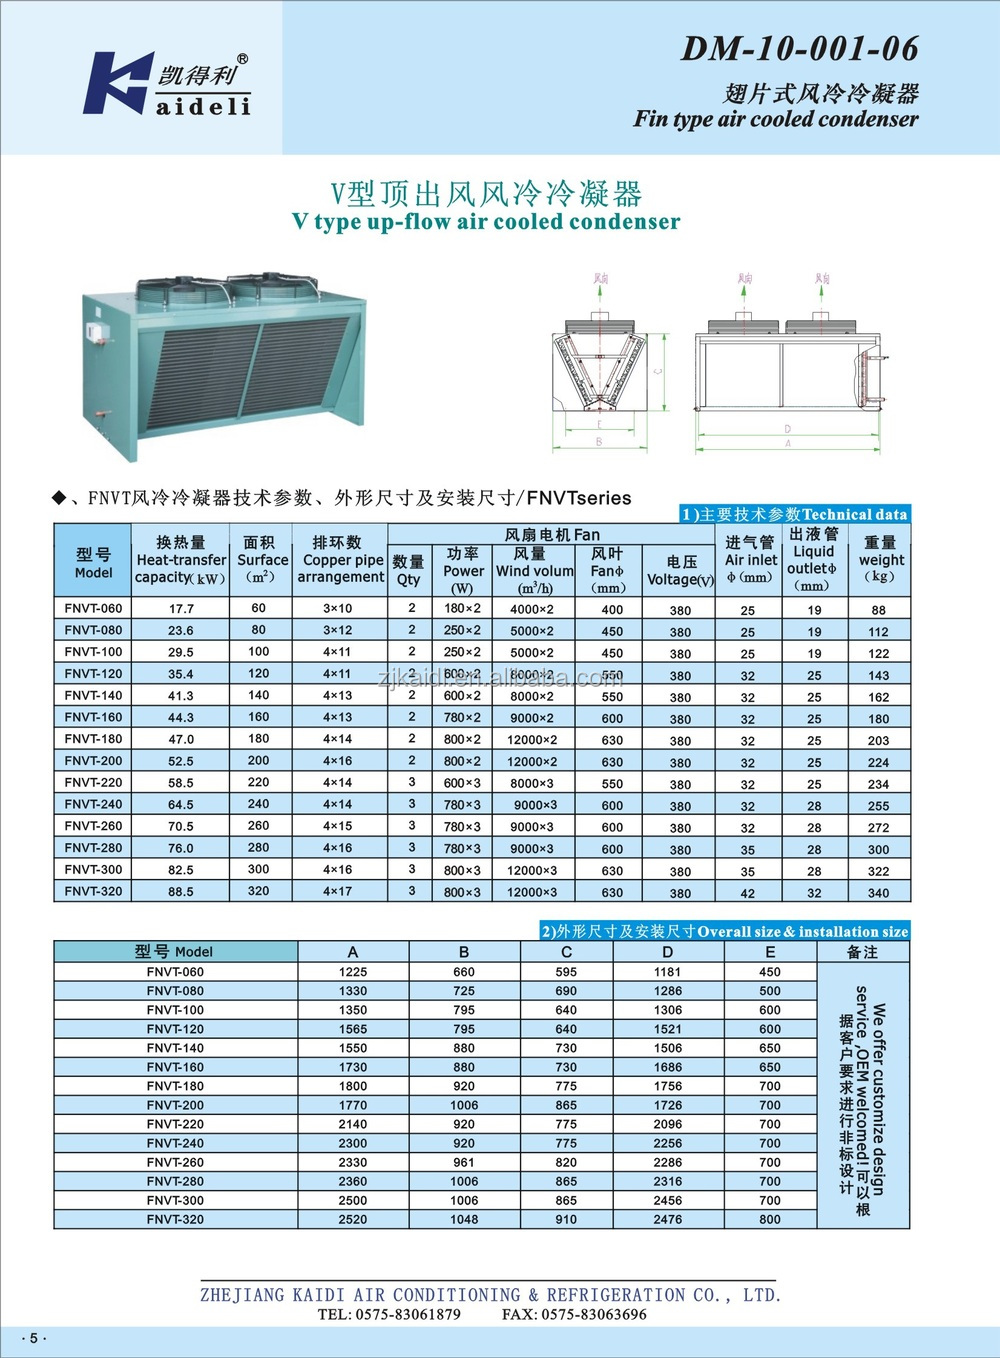 V Shape Aluminium Fin Copper Tube Air Cooled Condenser For Cold Room